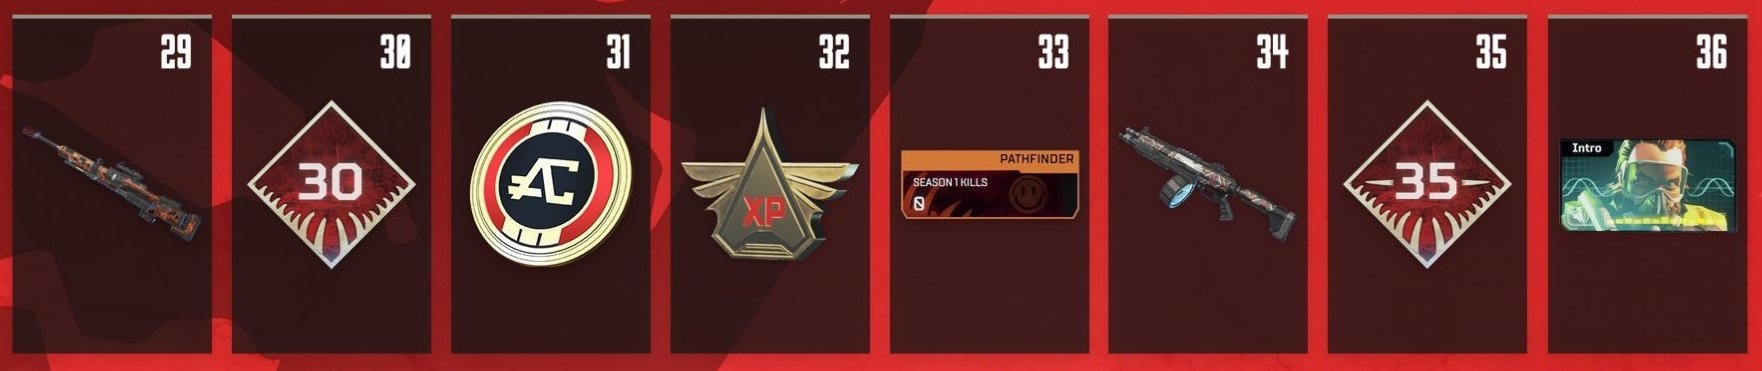 Apex Legends Battle Pass Rewards Levels 29-36